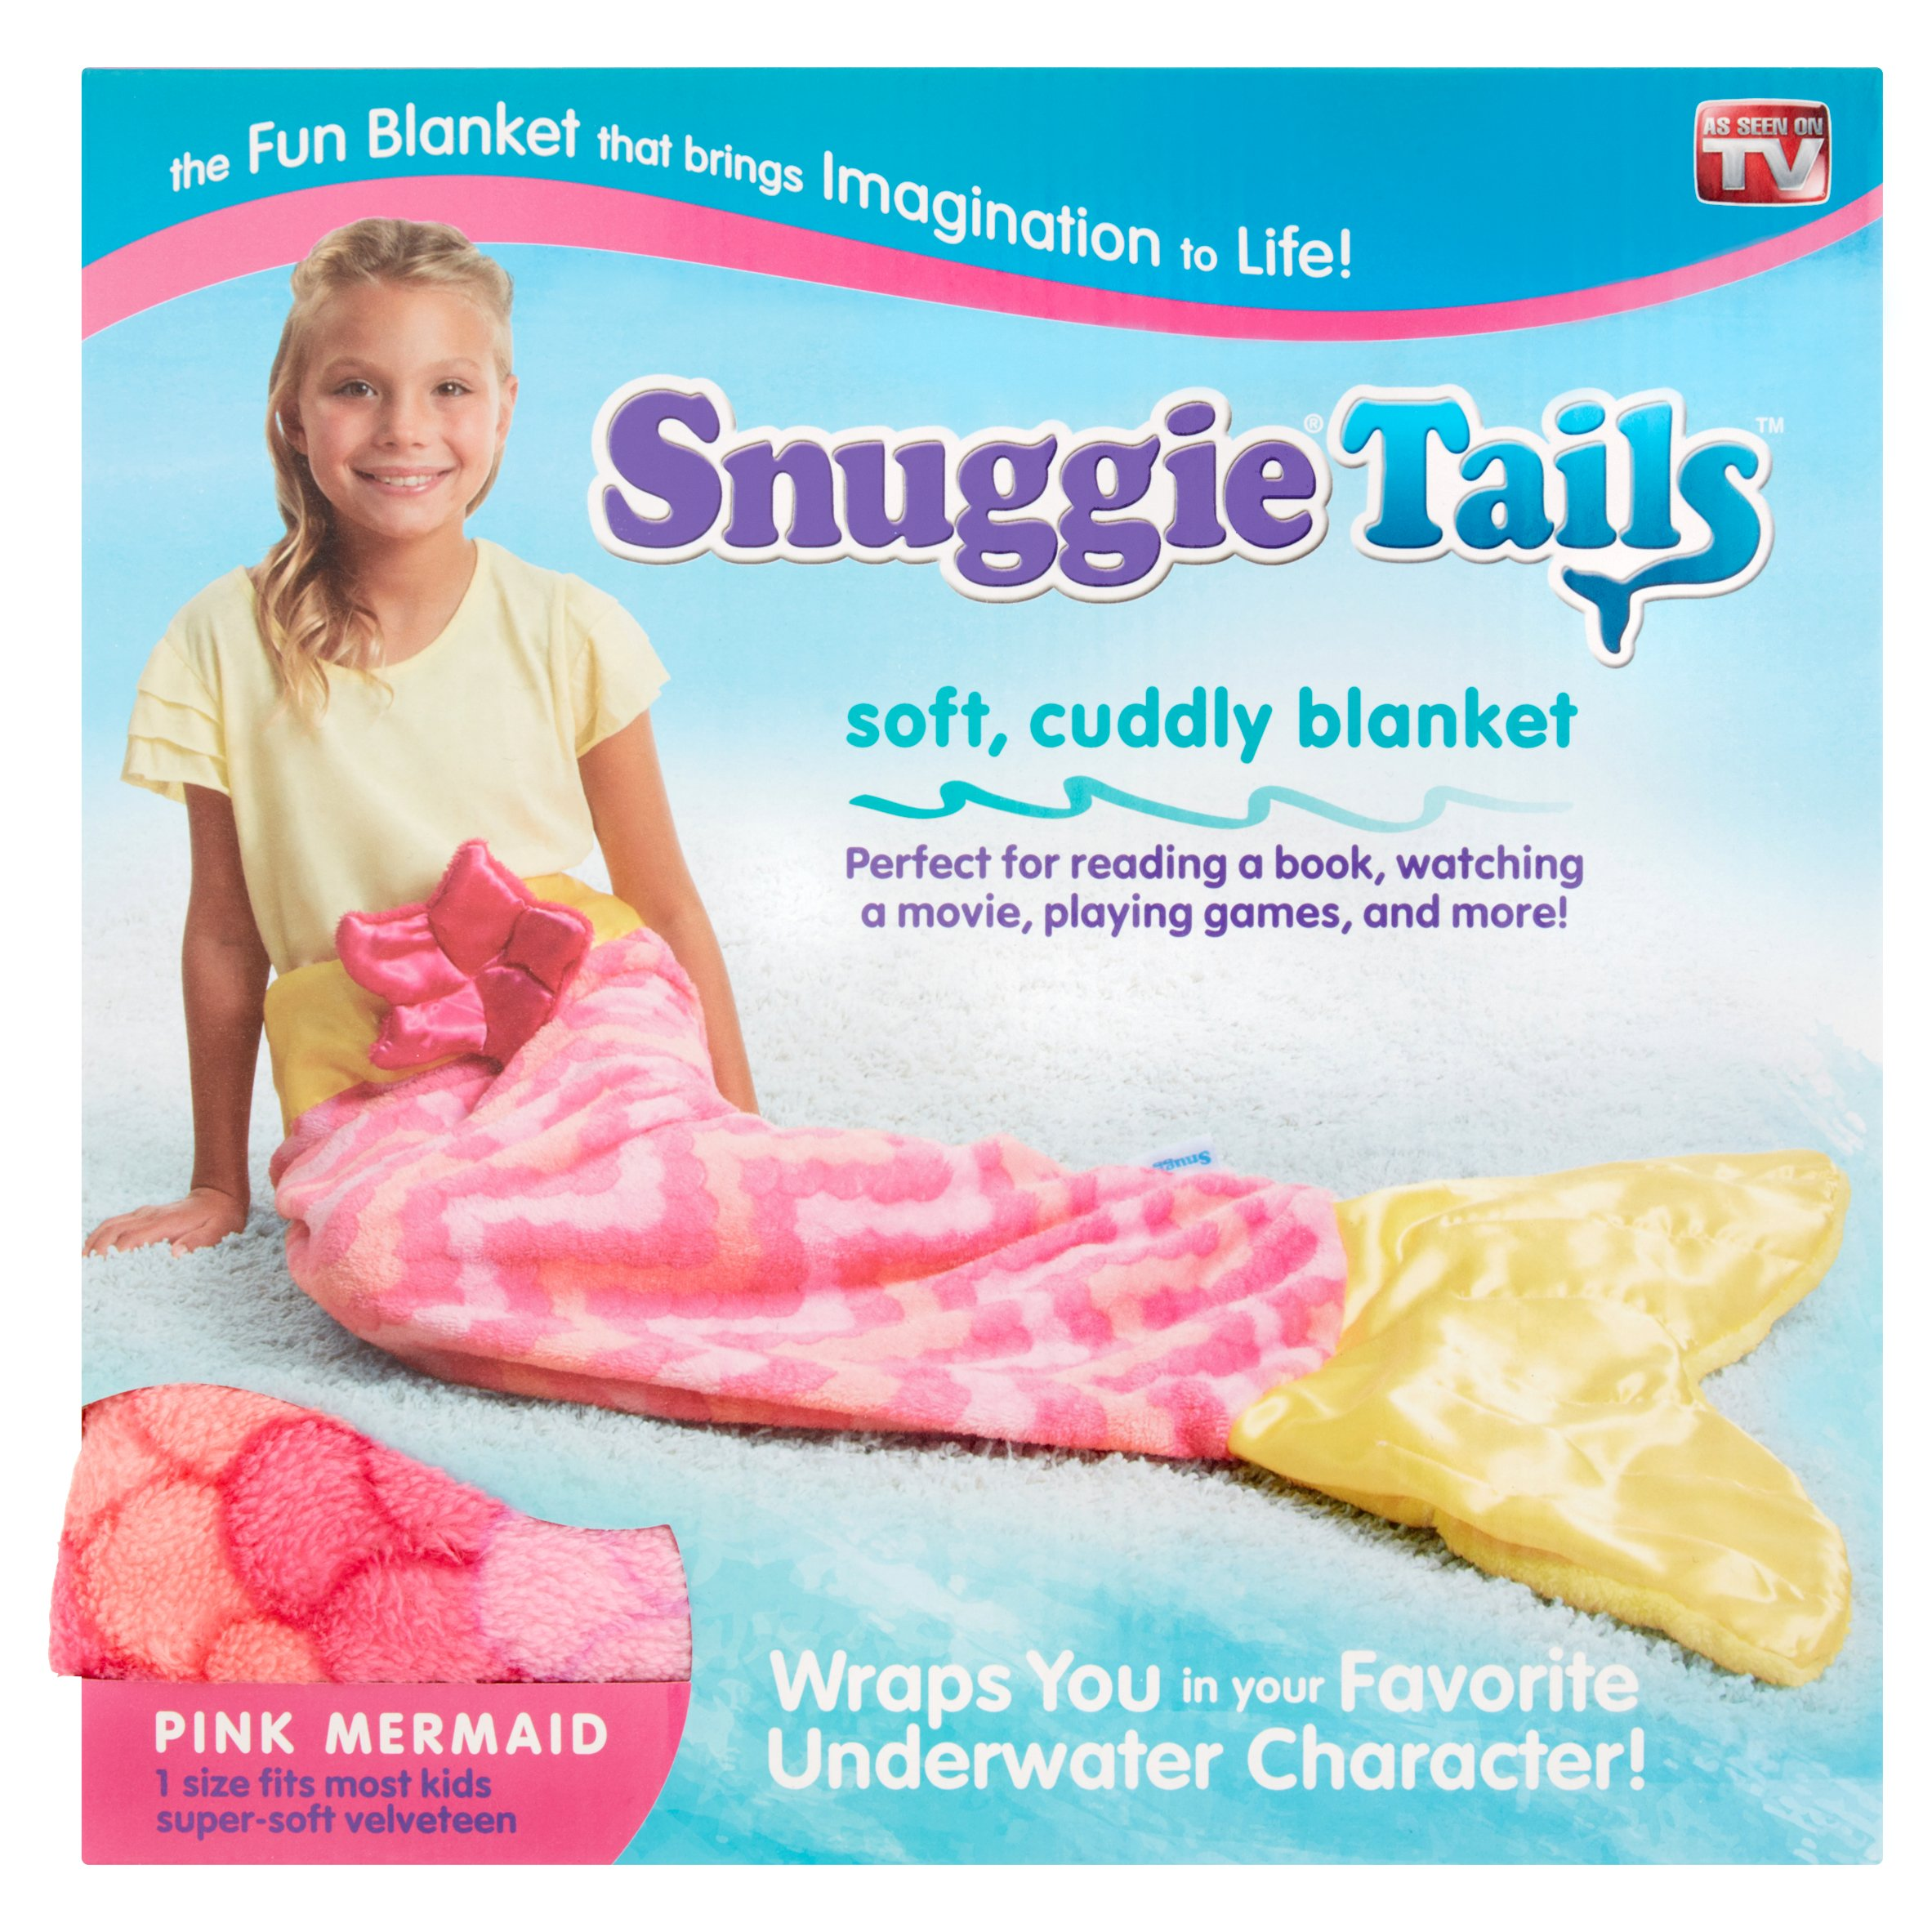 Snuggie Tails Pink Mermaid Soft, Cuddly Blanket by Allstar Products Group